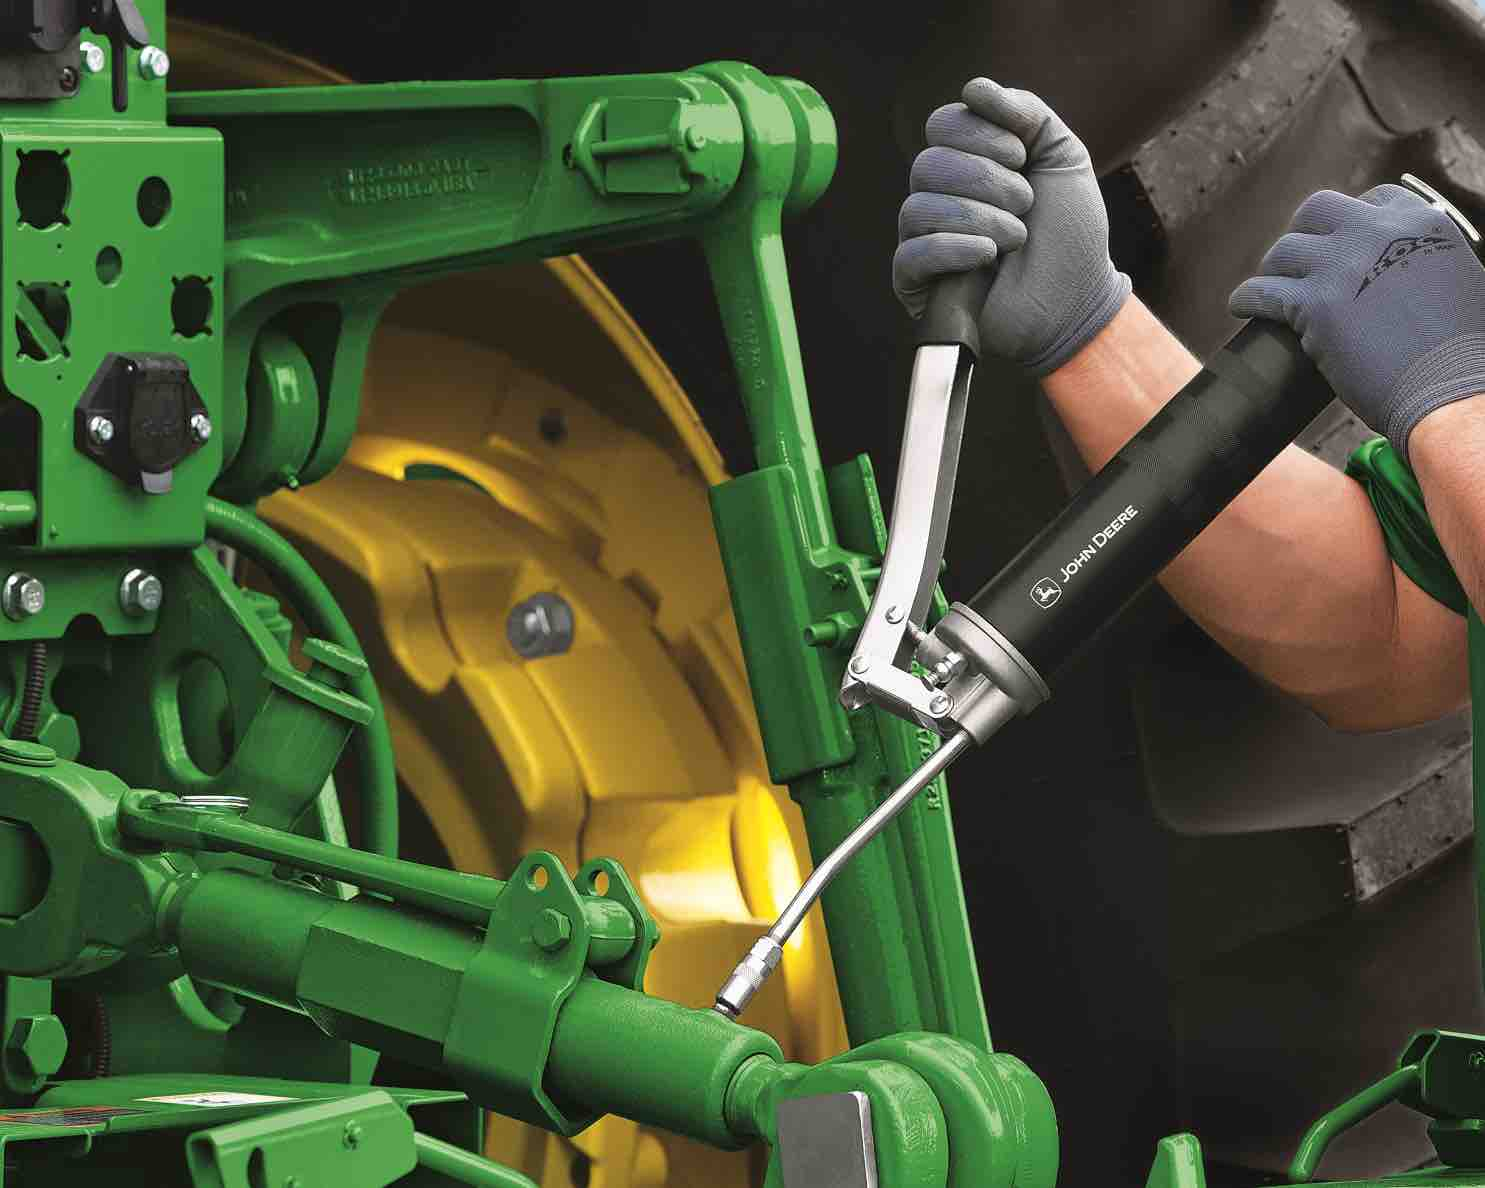 Save 1000 Dollars On New John Deere Eligible Hay Tools & Tractors